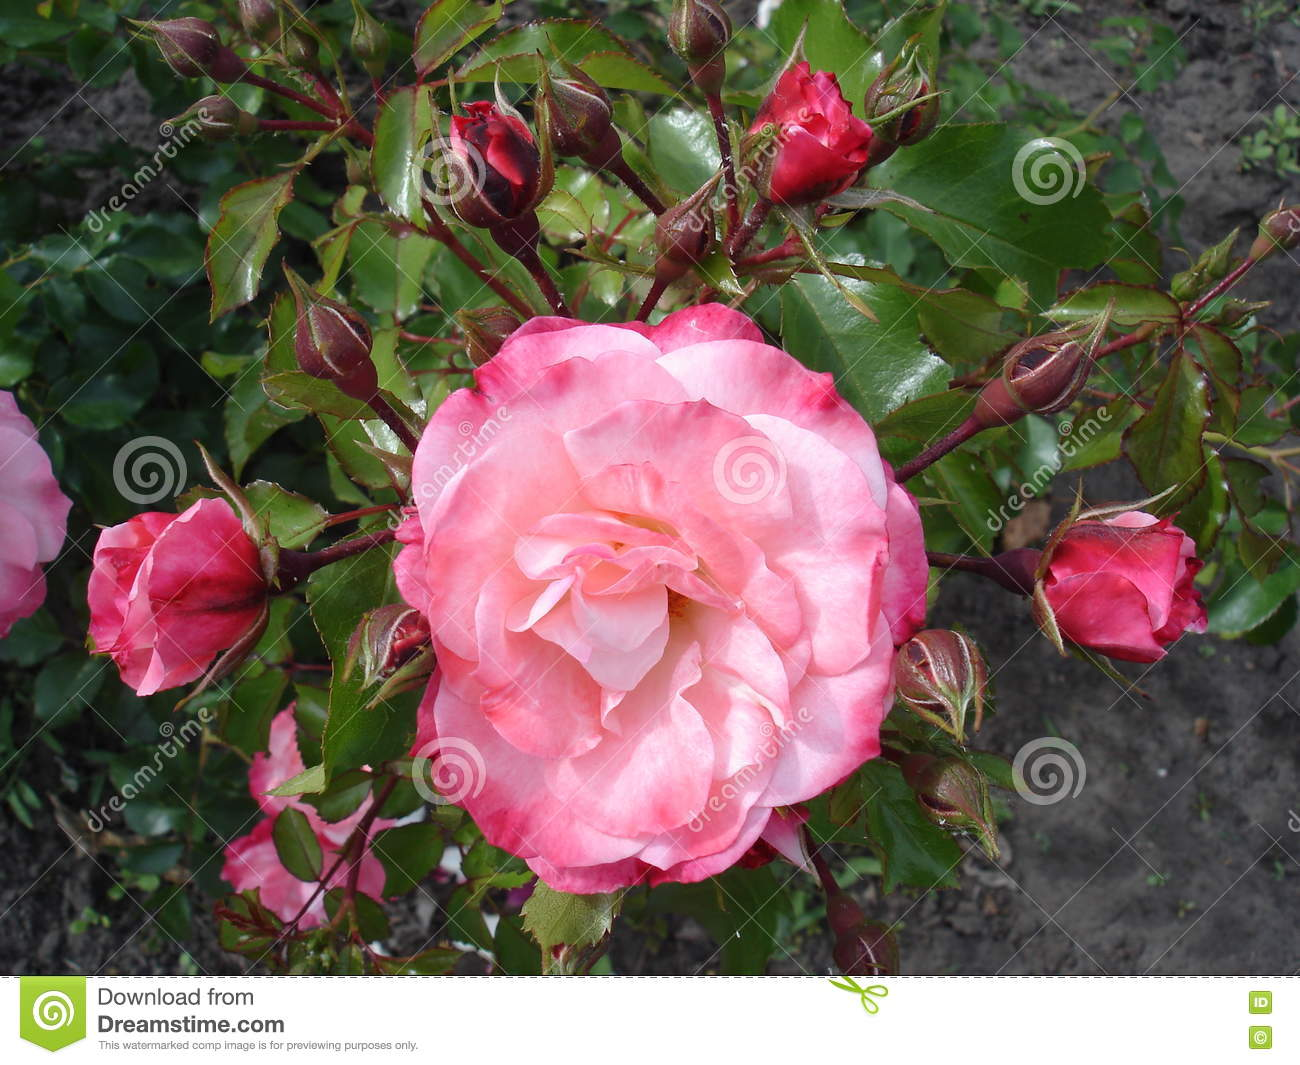 Our Rosy Carpet Rose Buds And Flowers Stock Photo Image Of Shrub